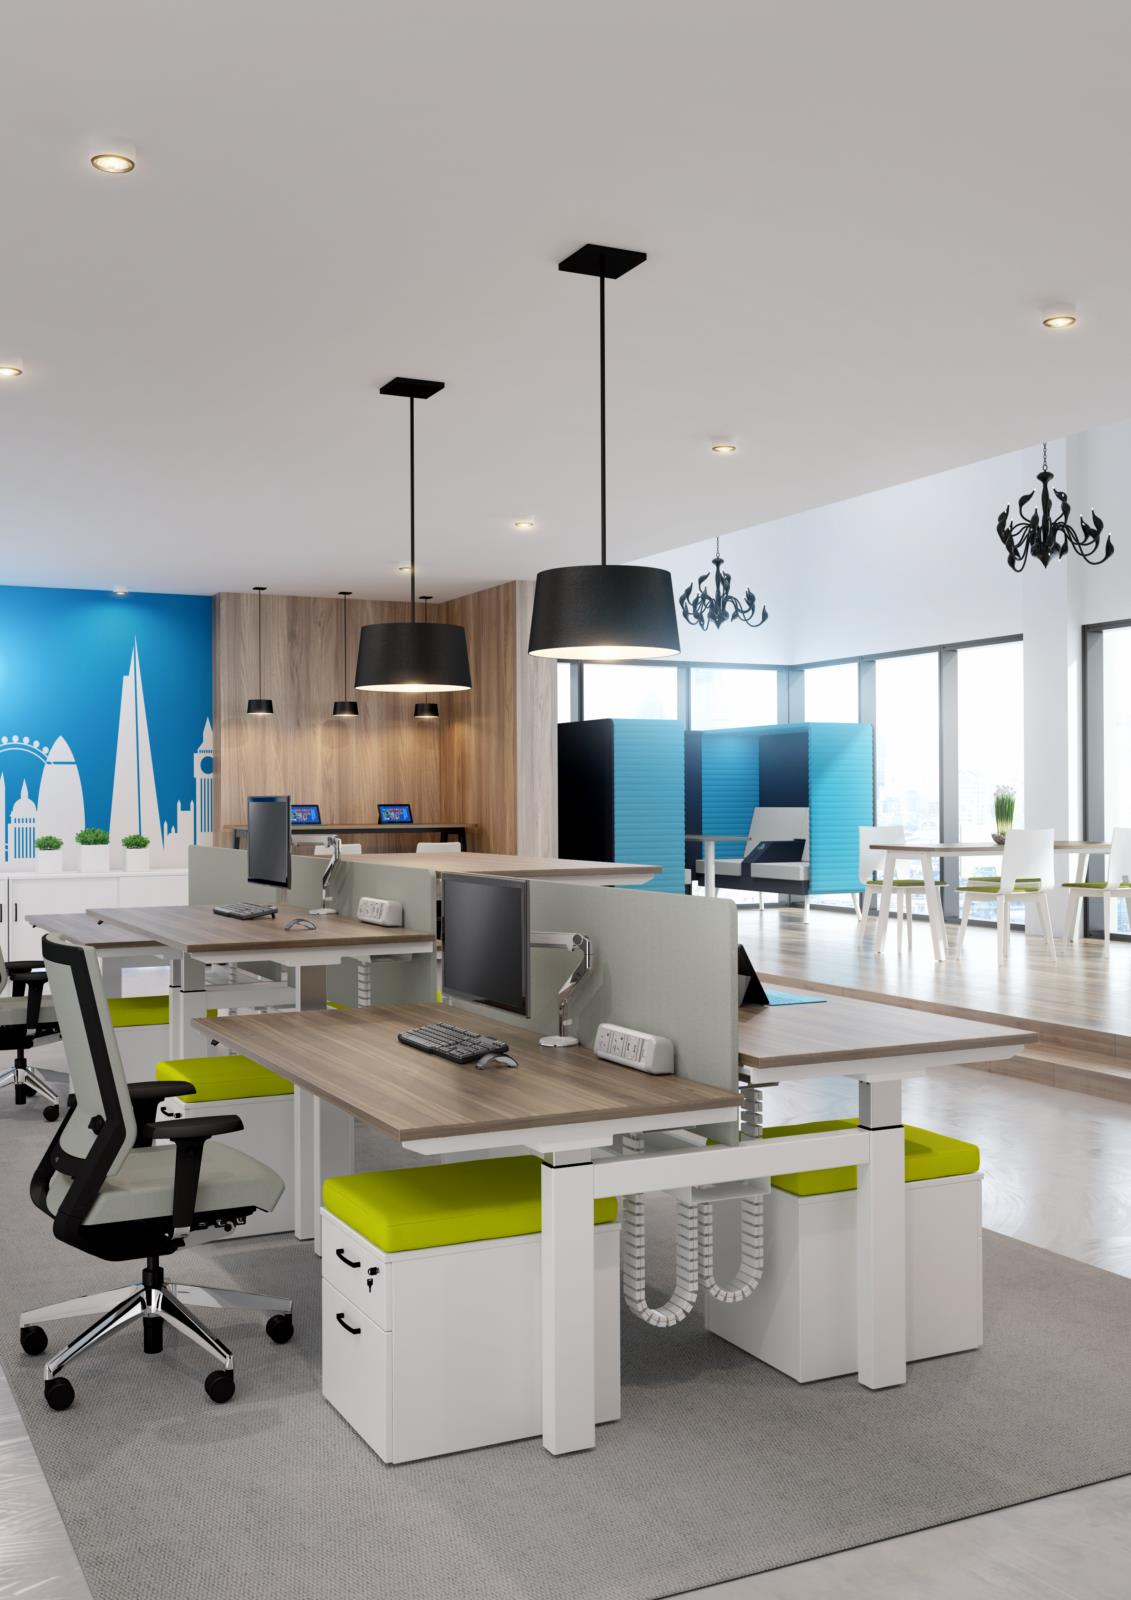 Office design trends 2017 a preview from aci for Office design trends